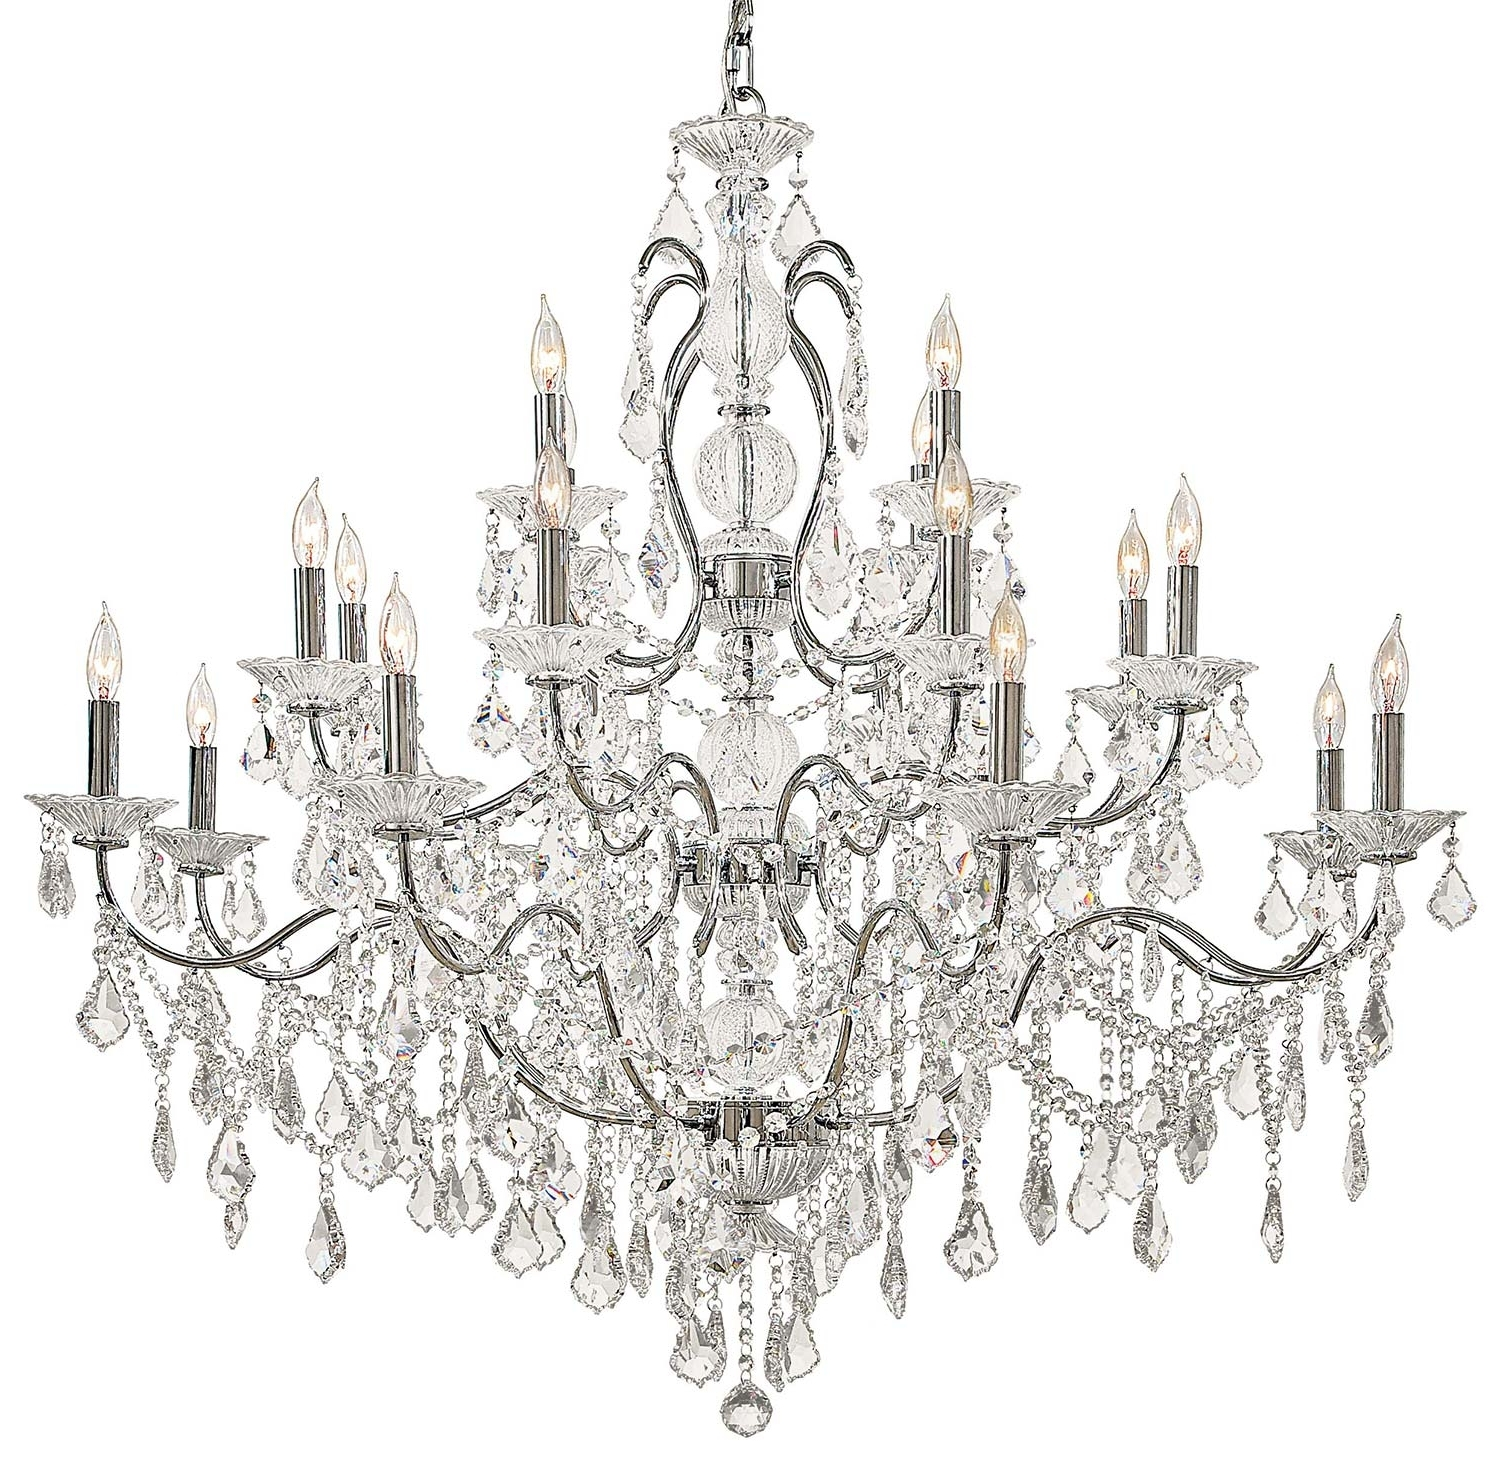 Vintage Style Chandelier In 2018 Light : Chandelier Crystals Vintage Php White Dining Crystal Room (View 12 of 15)